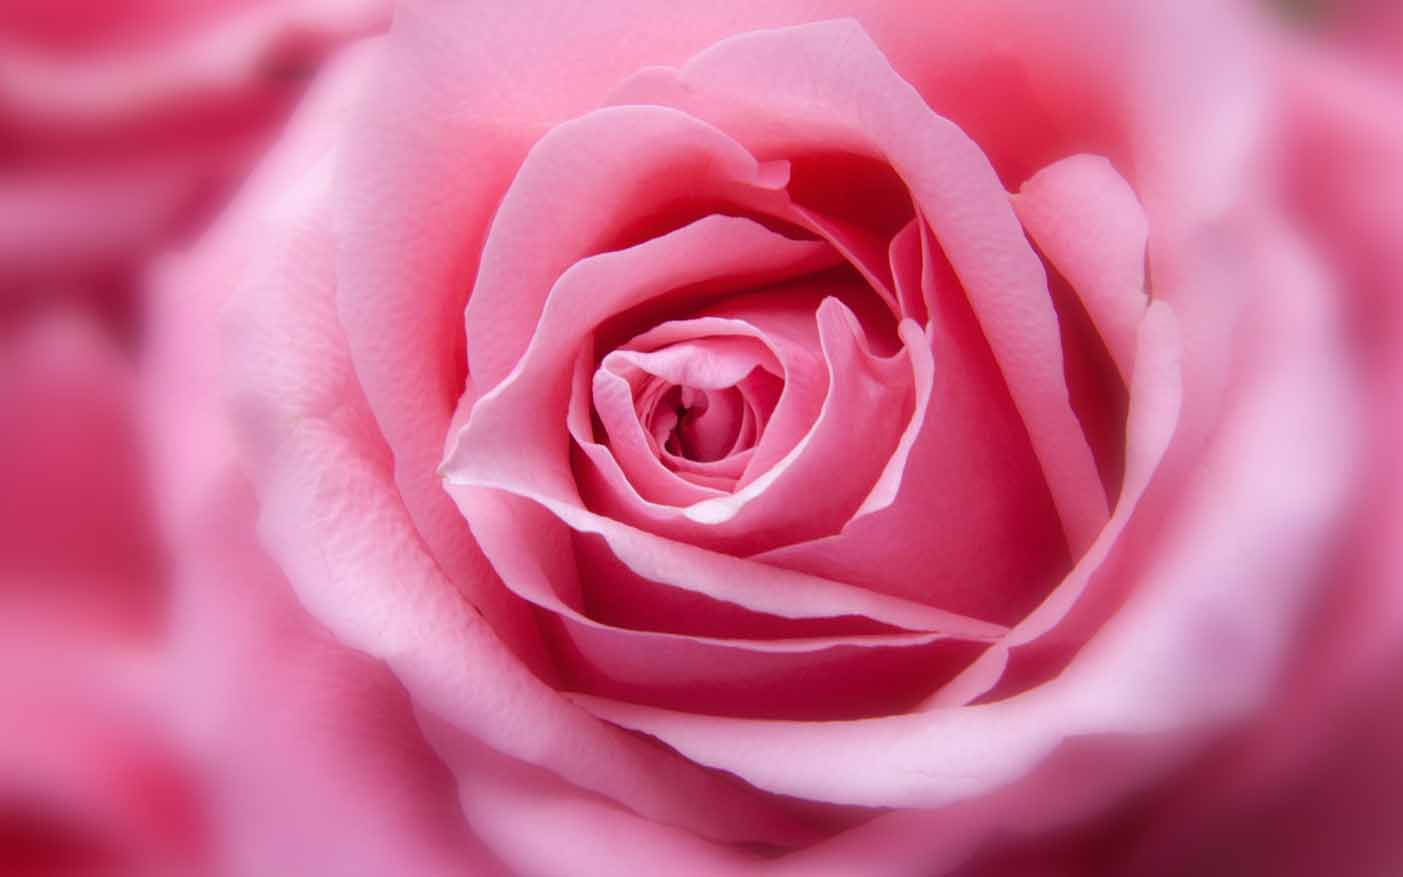 Get rose flowers images dps, beautiful whatsapp dp rose flowers rose images for whatsapp profile pic , rose dps and beautiful love rose. (HD) Beautiful Flower Images For Whatsapp Profile DP